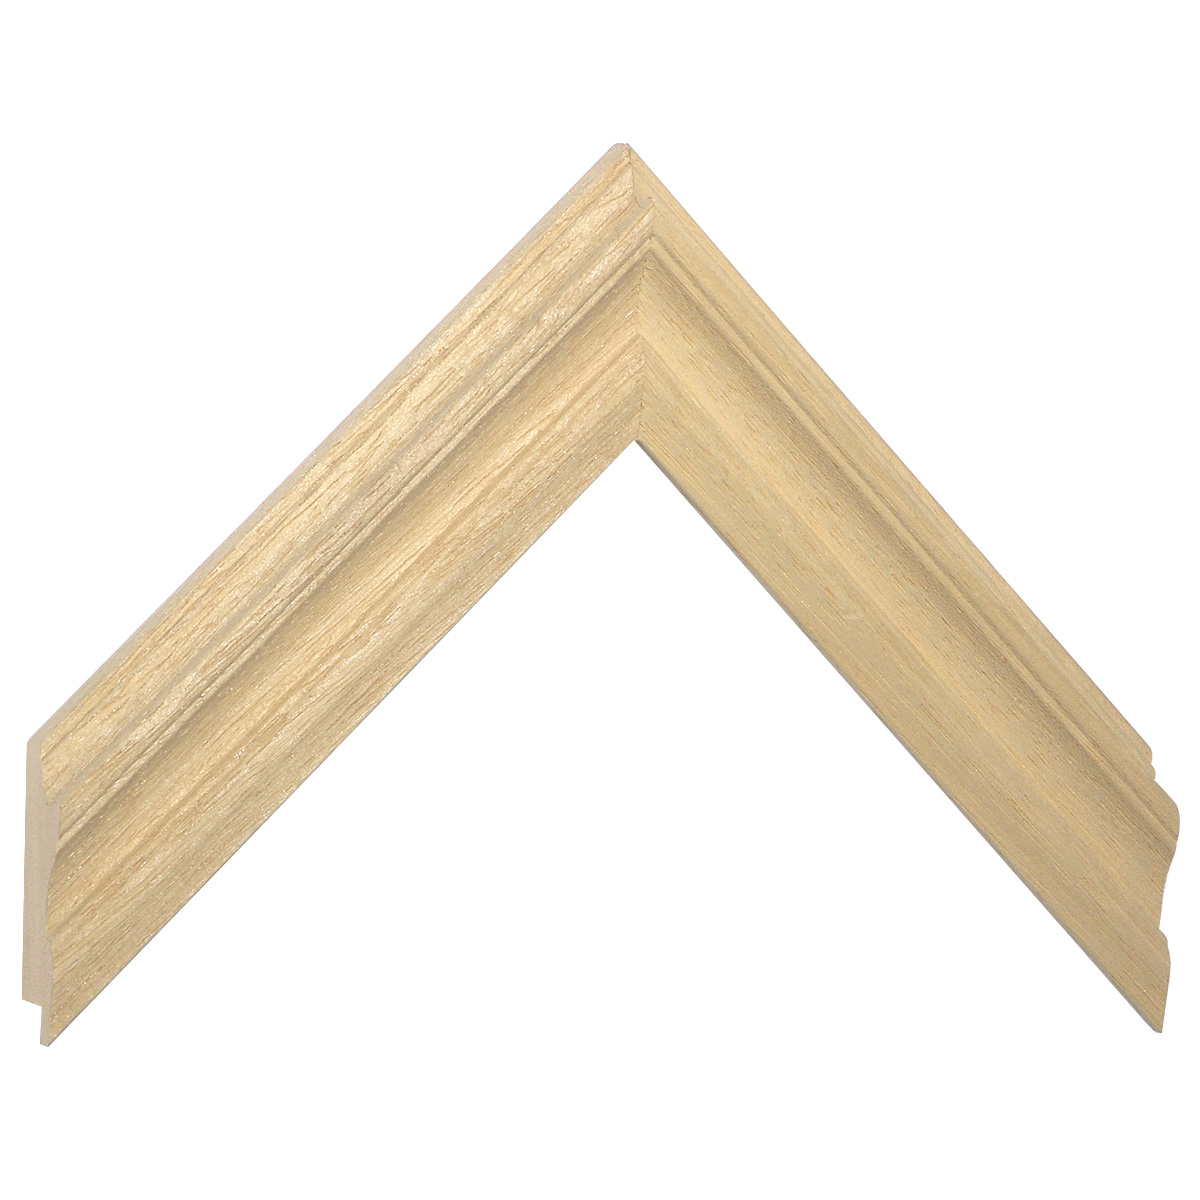 Mowlding ayous width 21 height 20, bare timber